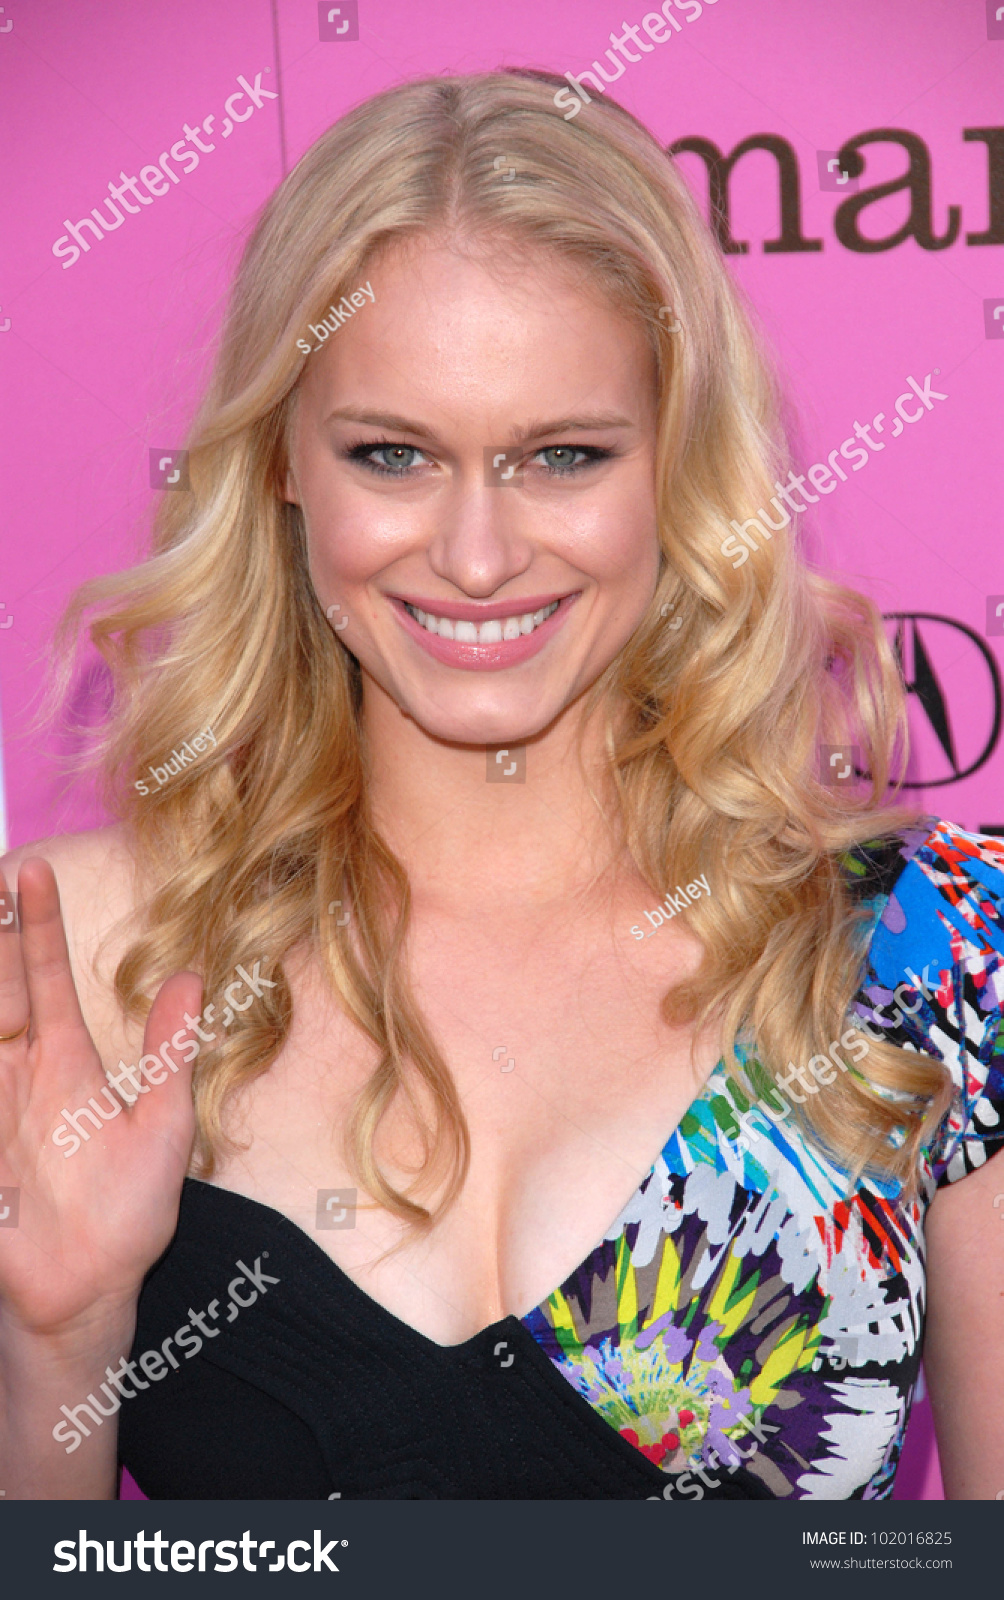 Young Leven Rambin naked (85 foto and video), Topless, Fappening, Feet, braless 2018